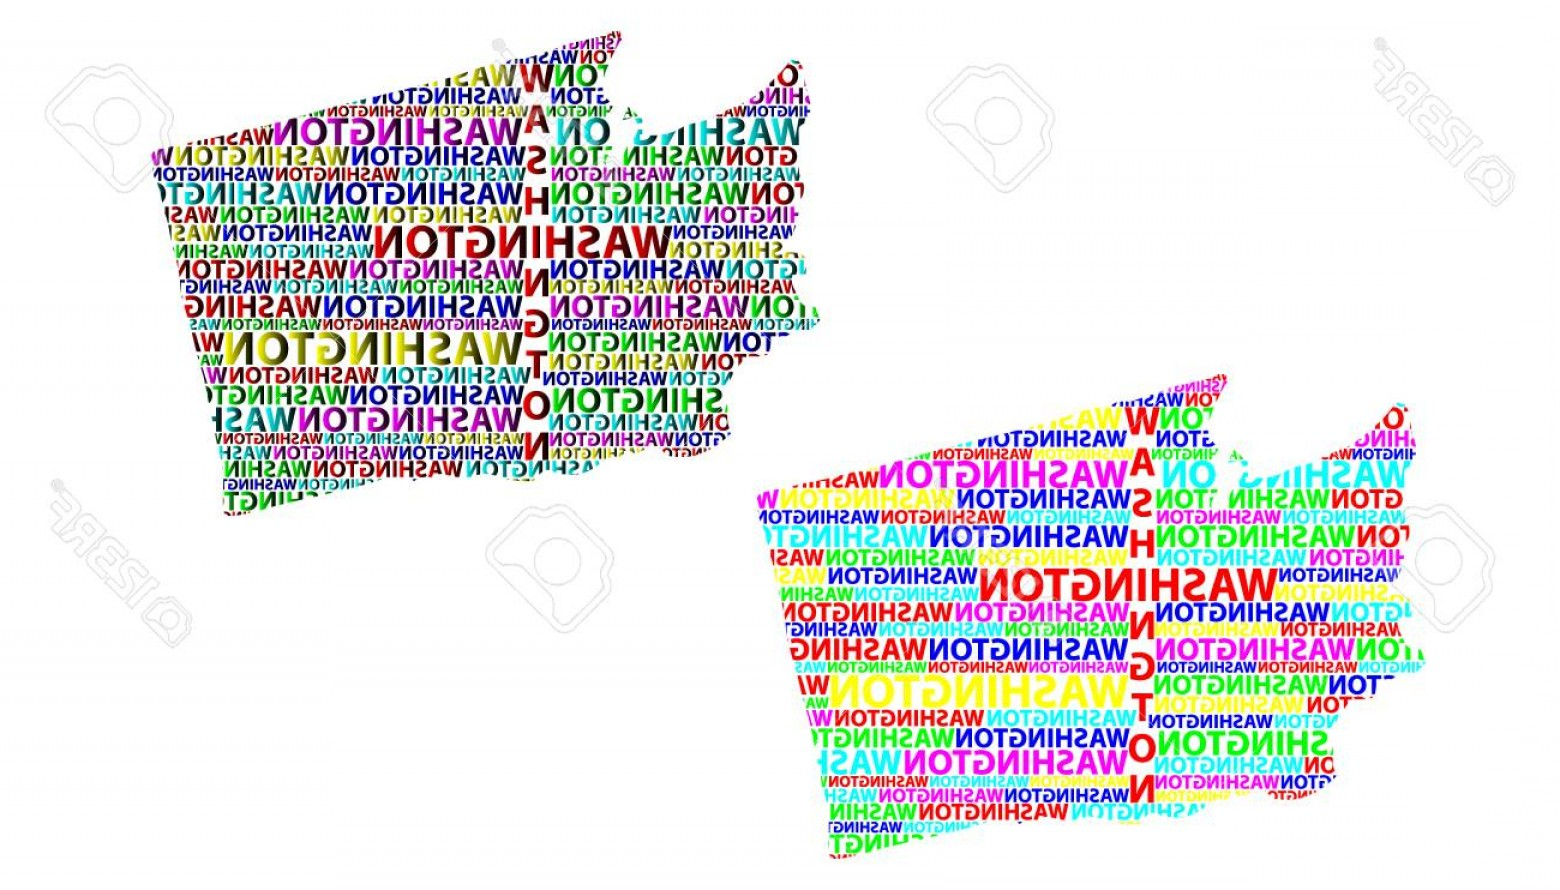 Washington State Map Vector: Photostock Vector Sketch Washington State United States Of America Letter Text Map Washington State Map In The Shape O